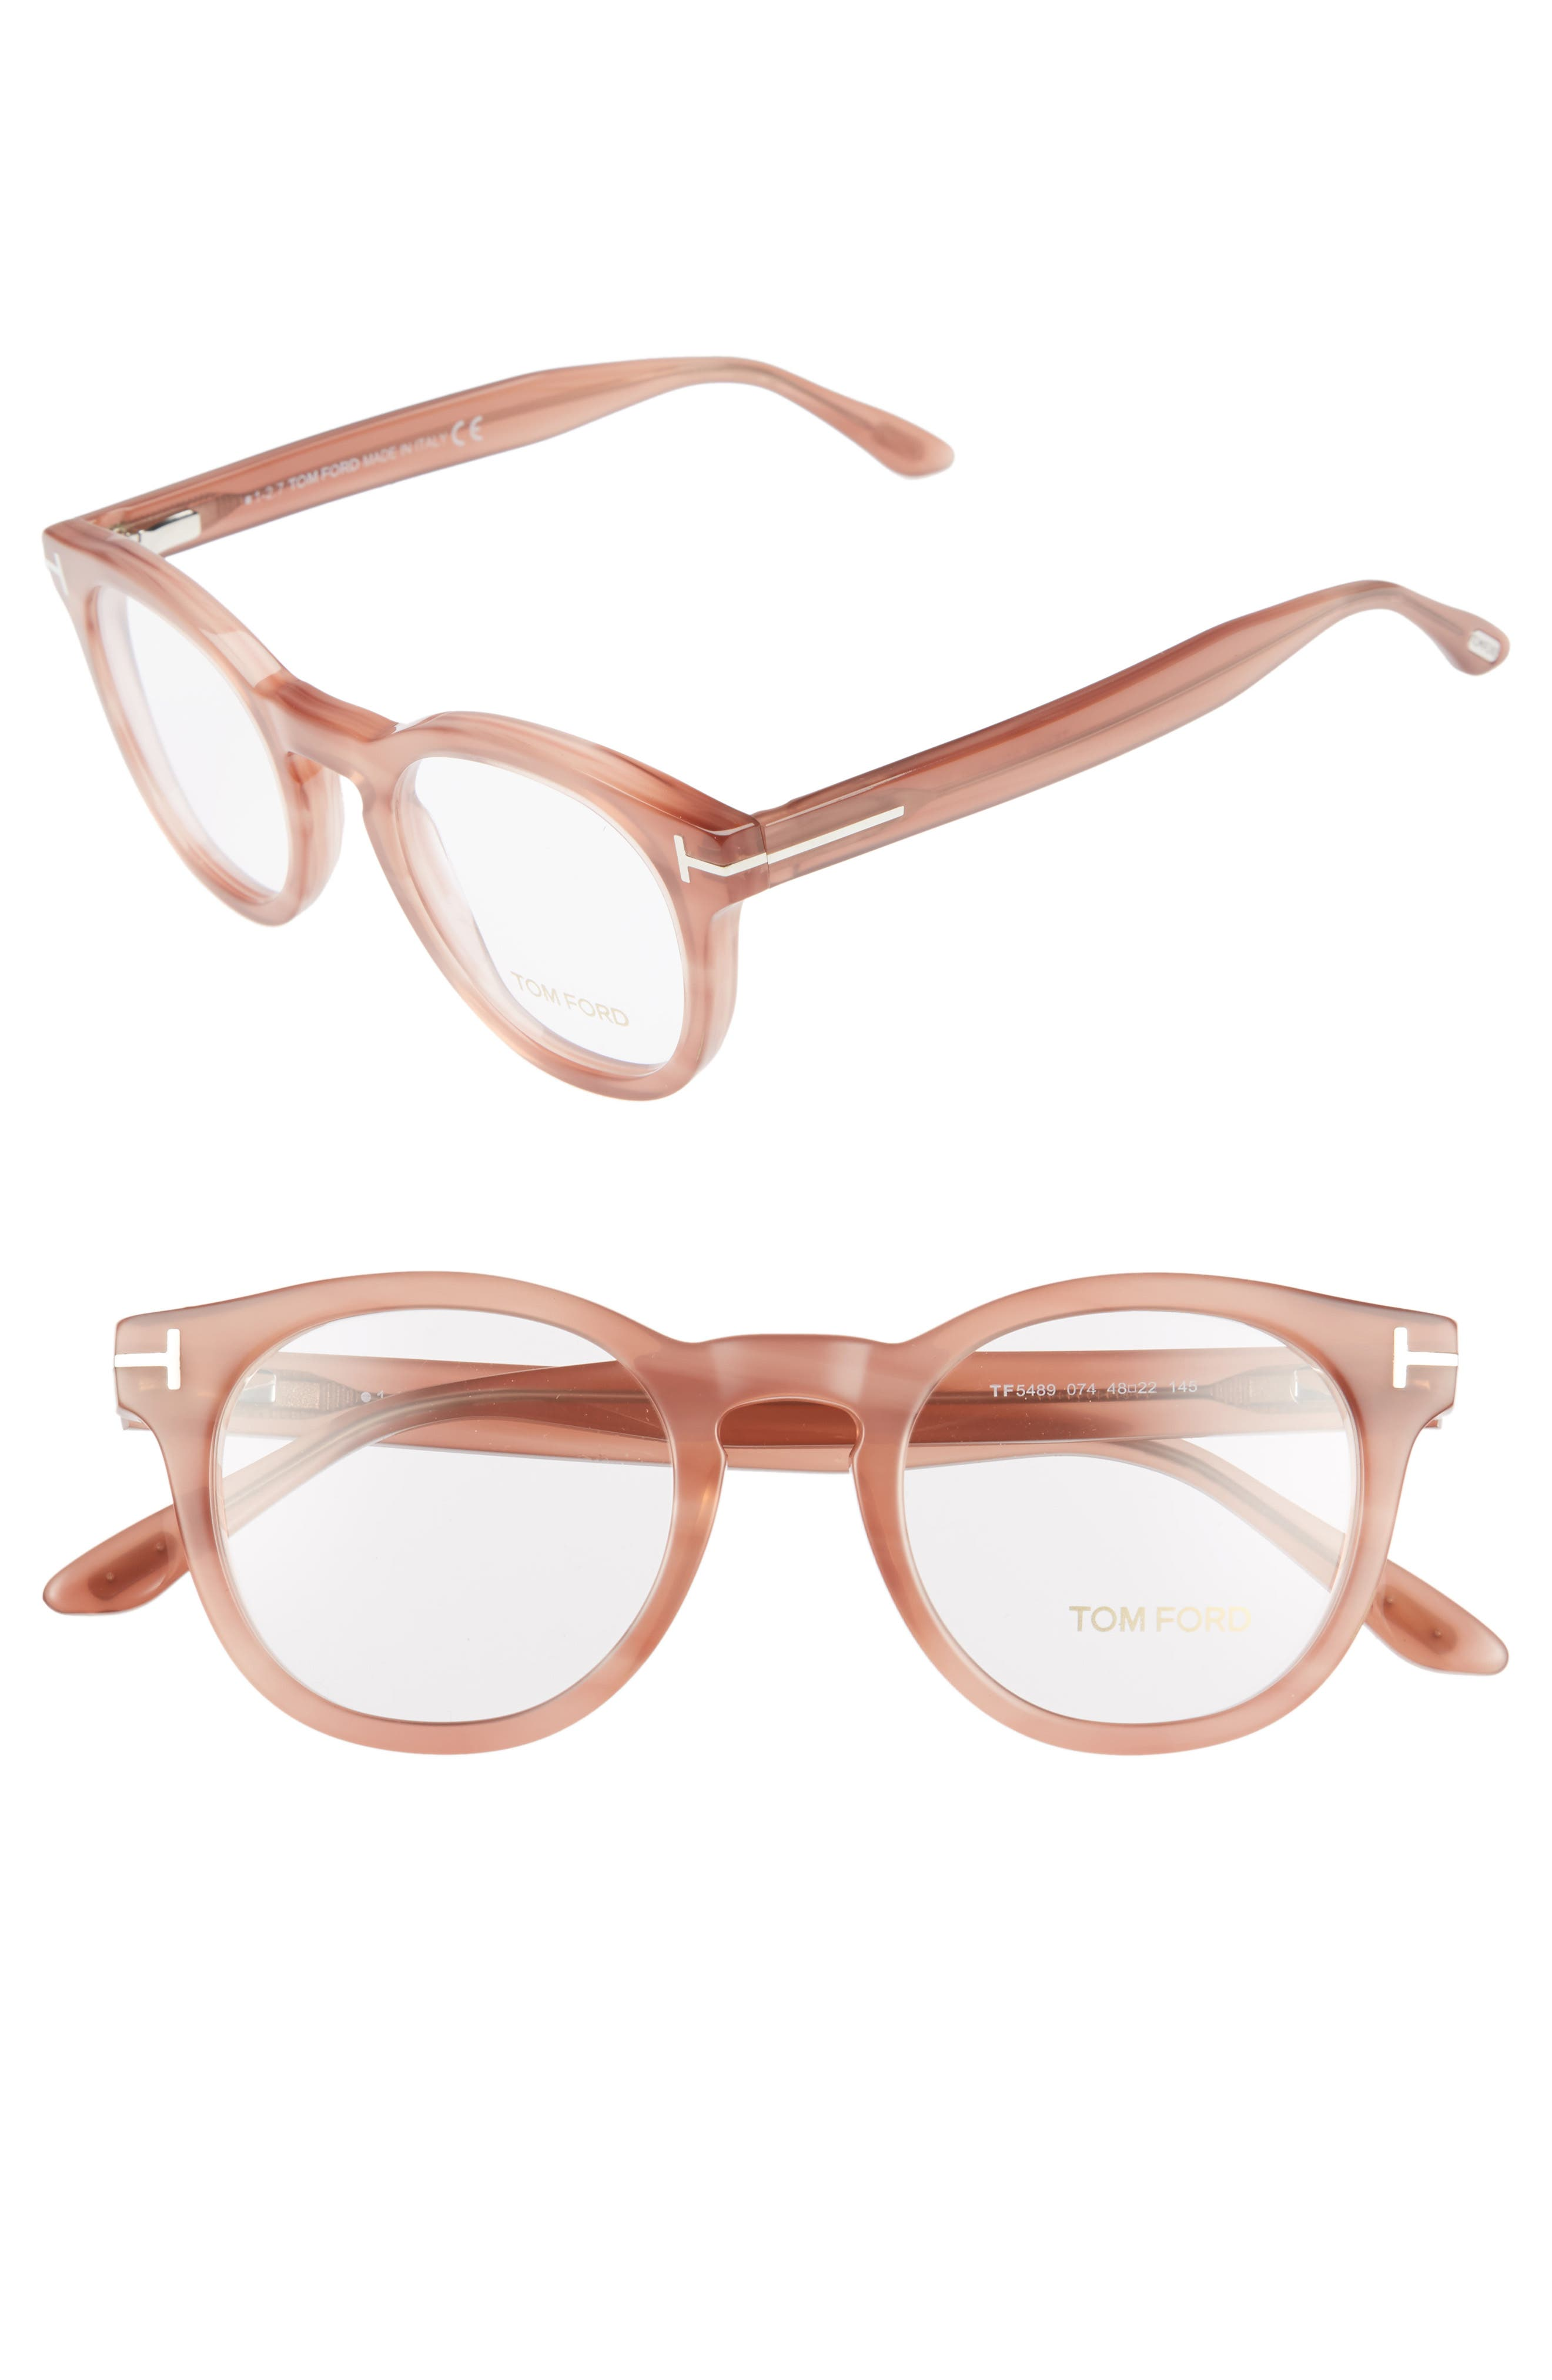 48mm Round Optical Glasses,                             Main thumbnail 3, color,